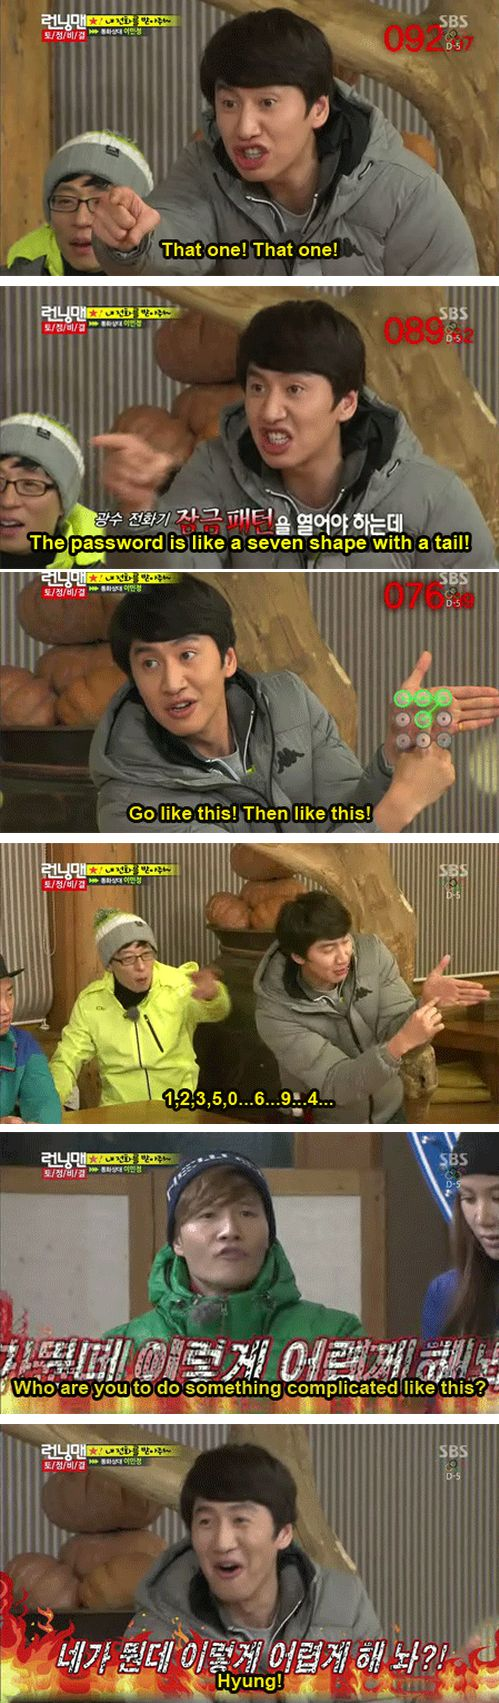 "The little ""hyung!"" bounce at the end is adorable as Kwang Soo tries to get Jong Kook to focus when he's distracted by his need to scold.haha"